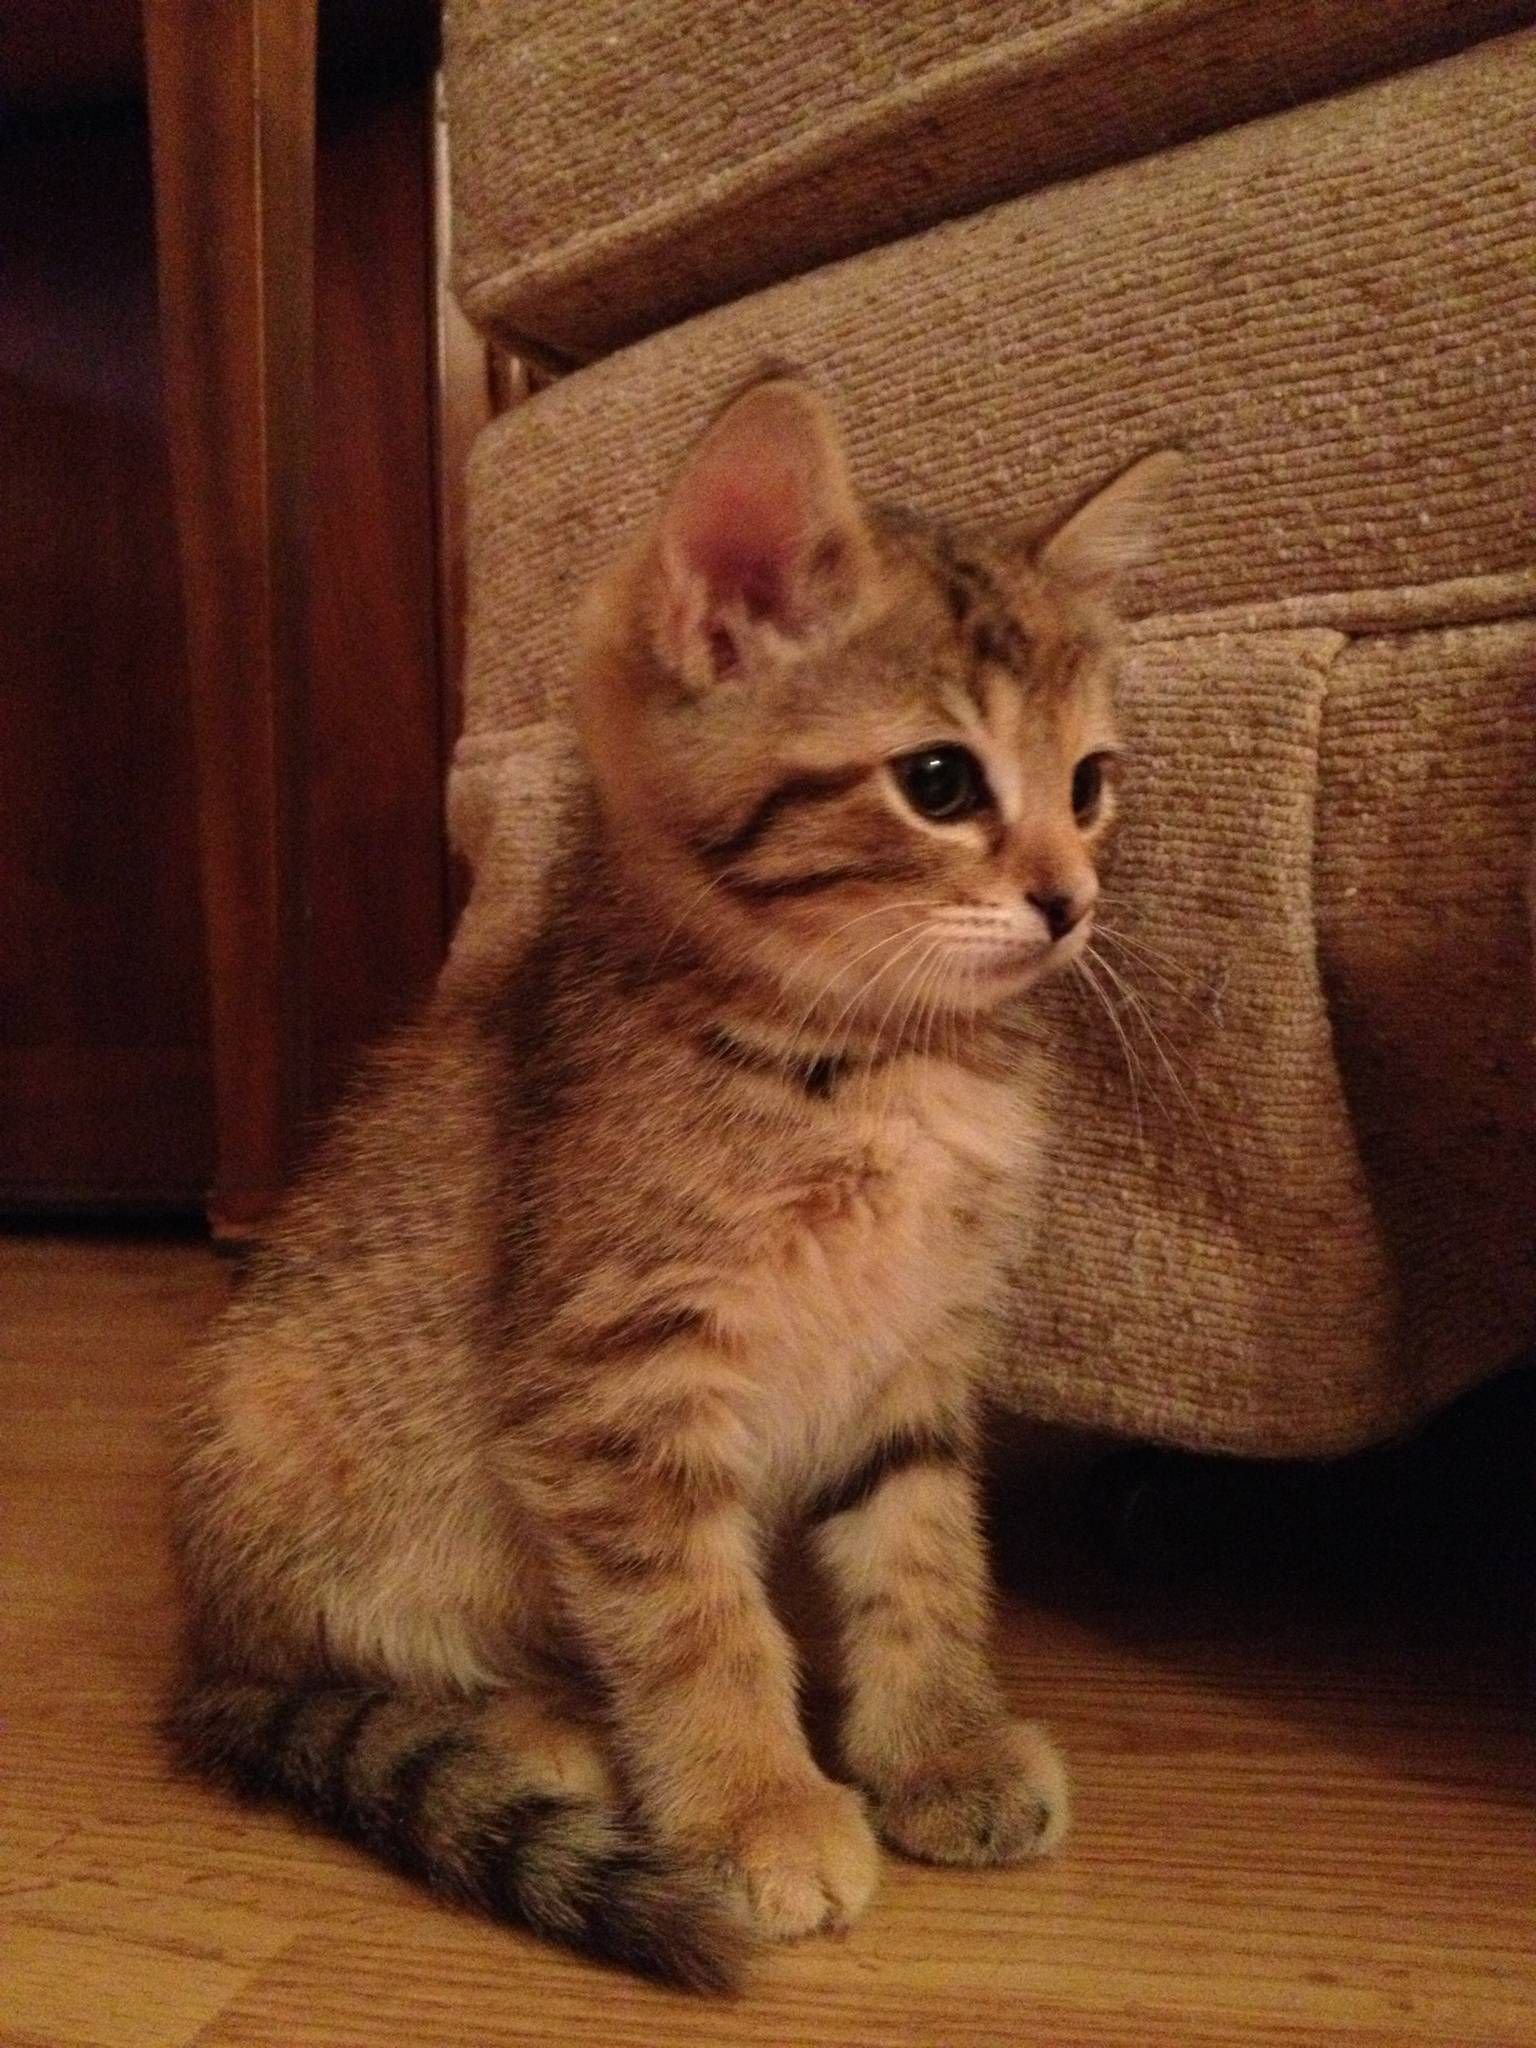 My Grandmother S New Kitten Turns Out He S 6 Months Old And Won T Be Getting Any Bigger Want So Bad Tabby Kitten Kitten Kitten Names Girl